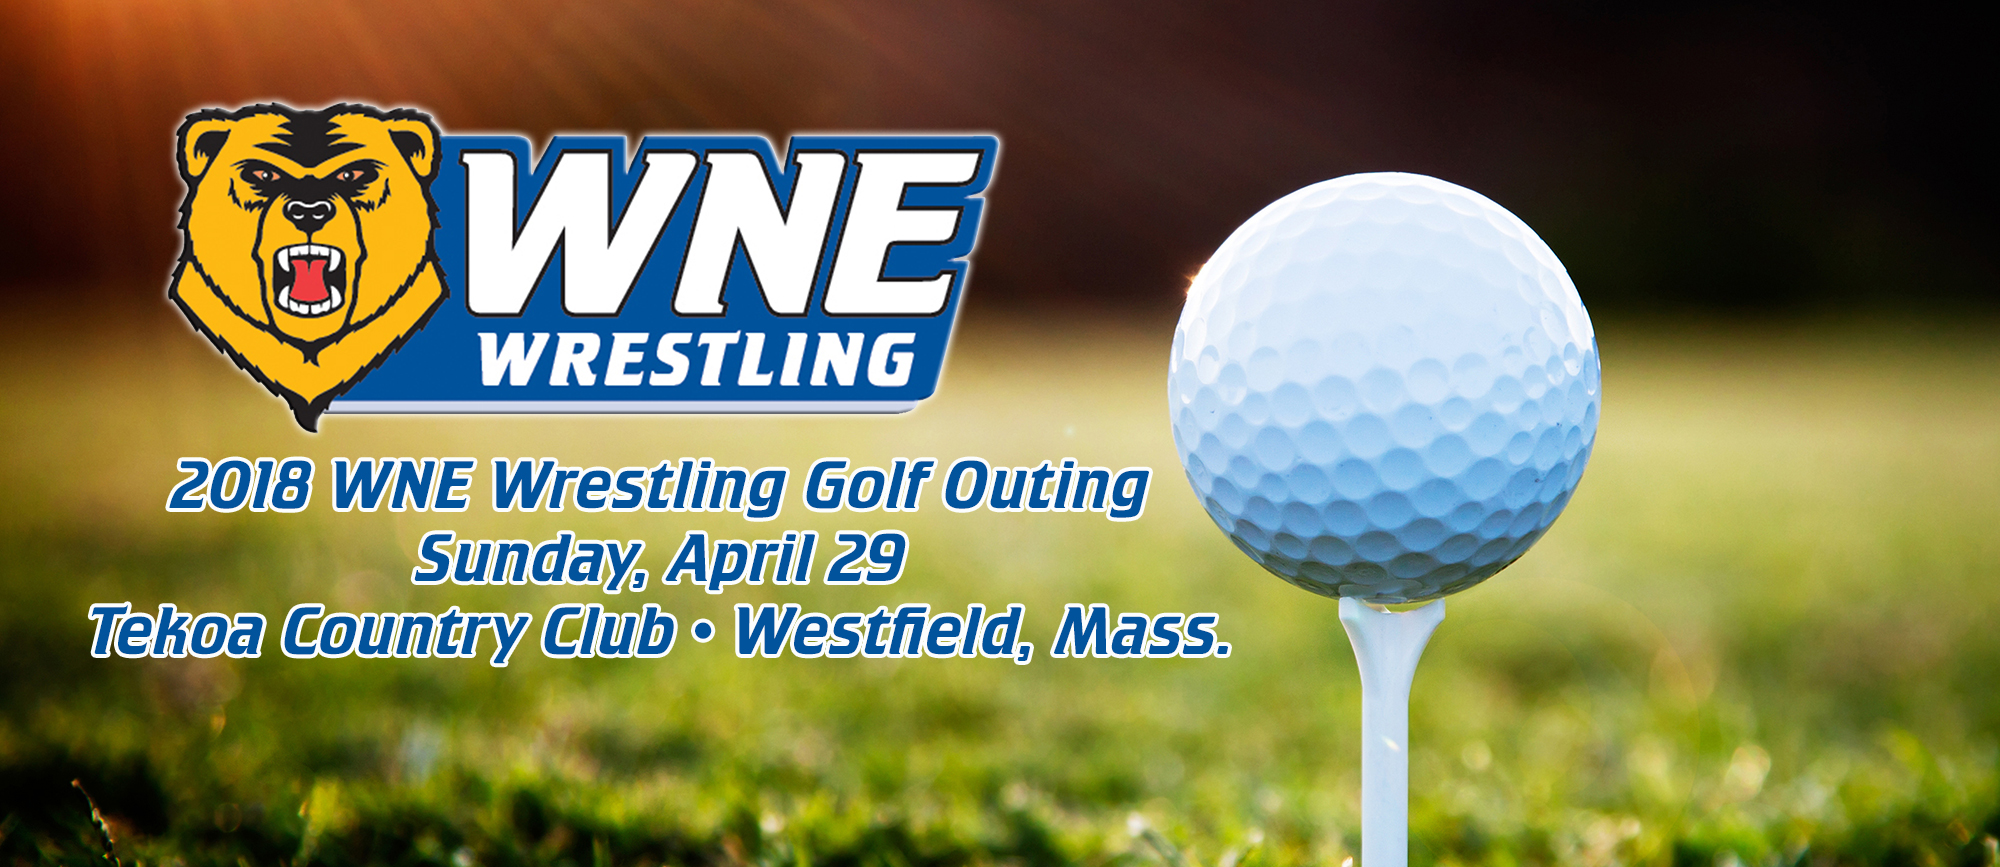 WNE Wrestling to Host Golf Outing on Sunday, April 29